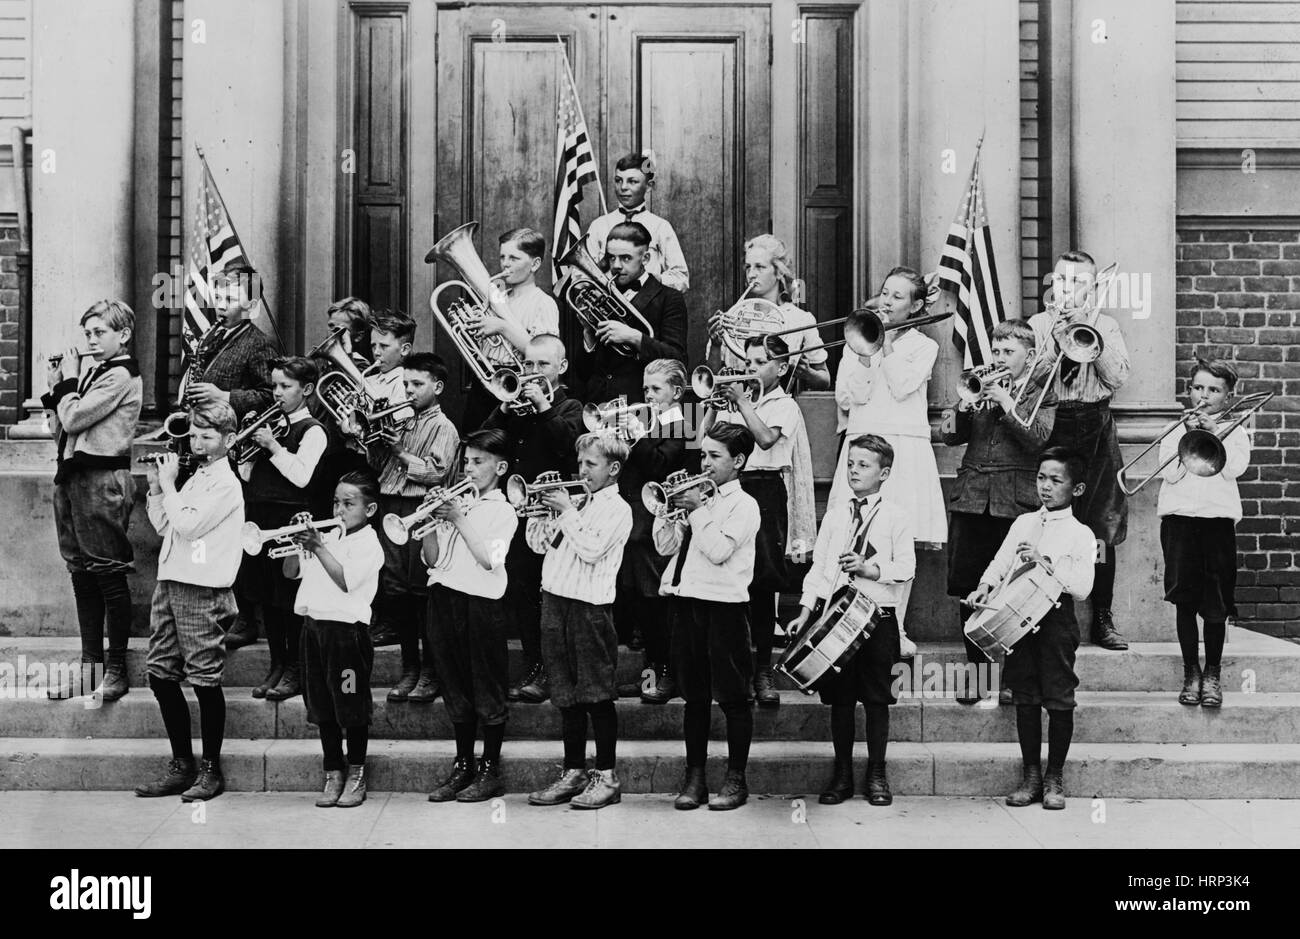 Open Air School Band, 1917 - Stock Image